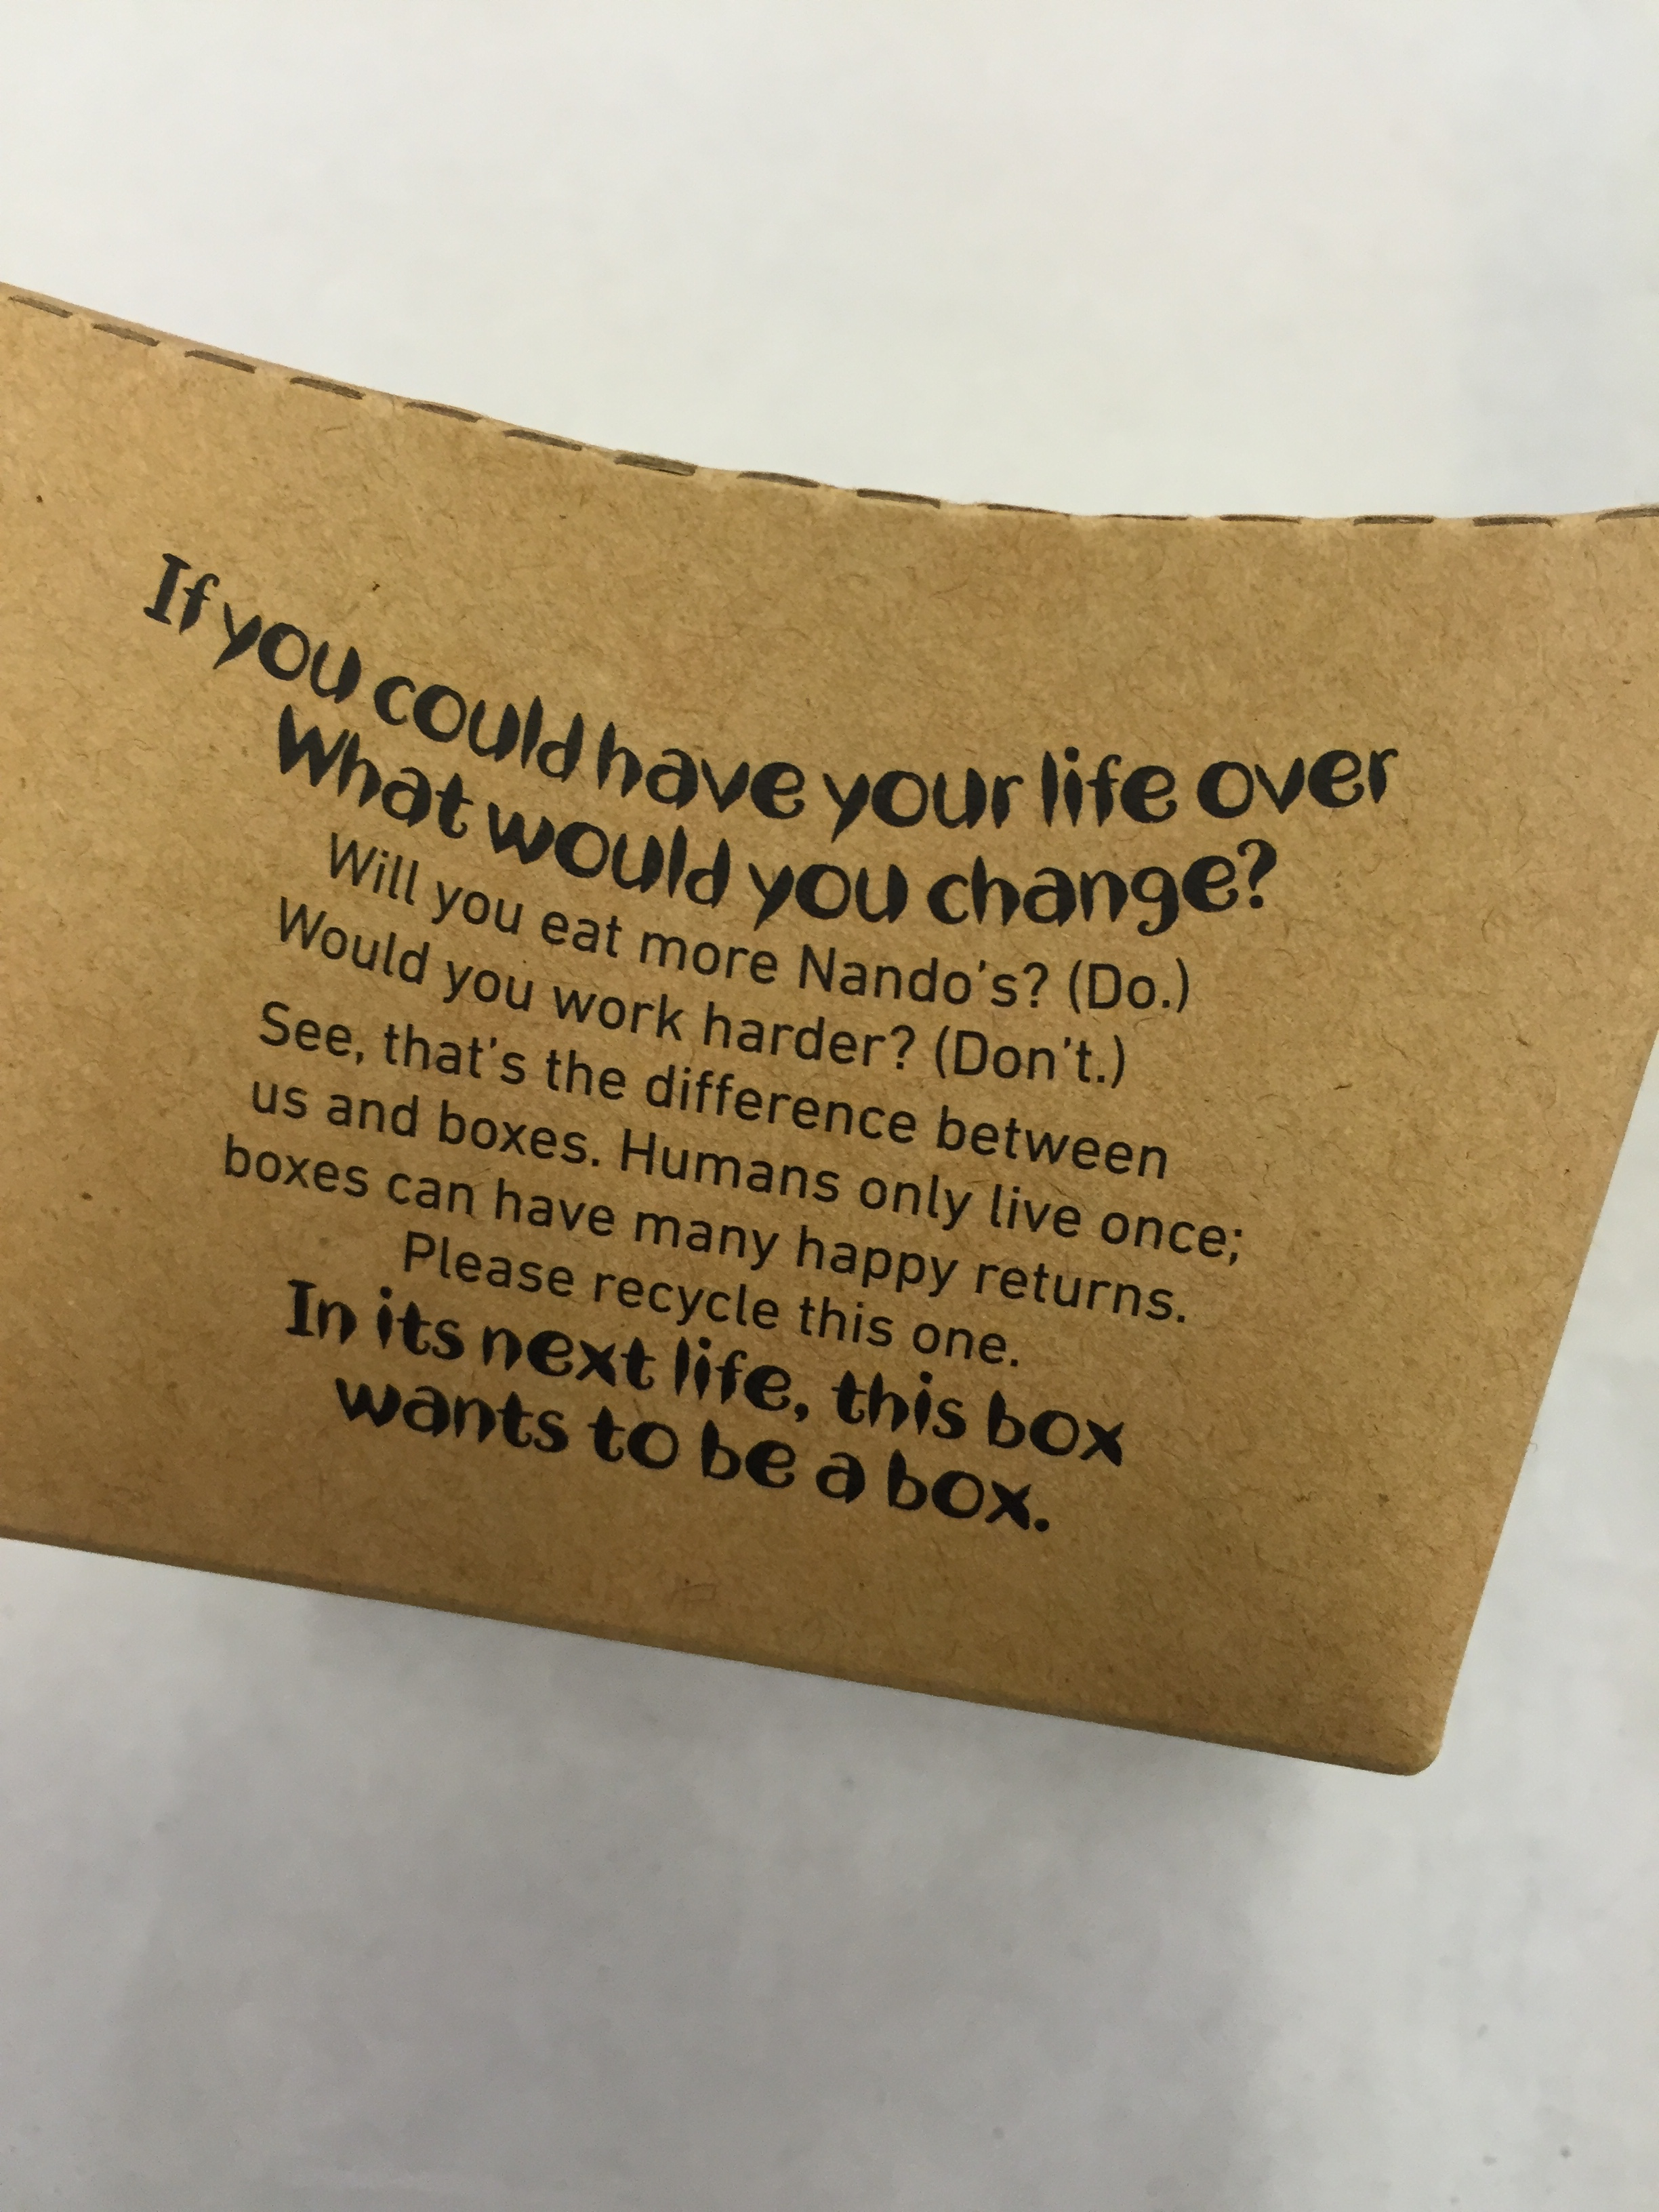 Copy from Nando's that's engaging without being annoying